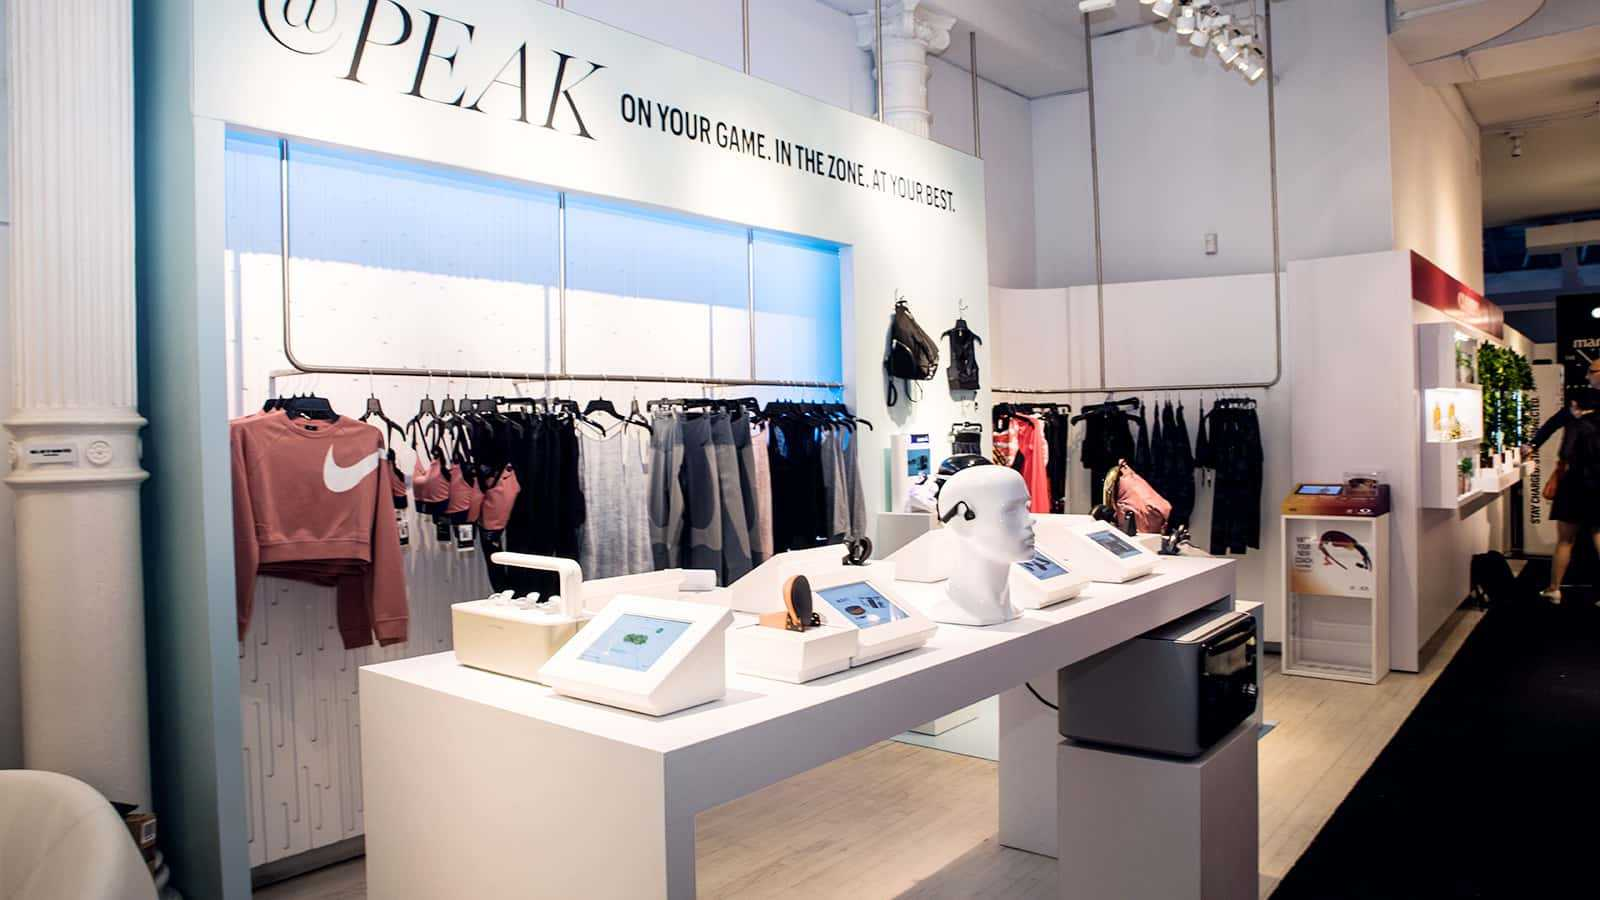 View from left of @Peak zone at Marie Claire Next Big Thing Concept Shop in New York City 2017.